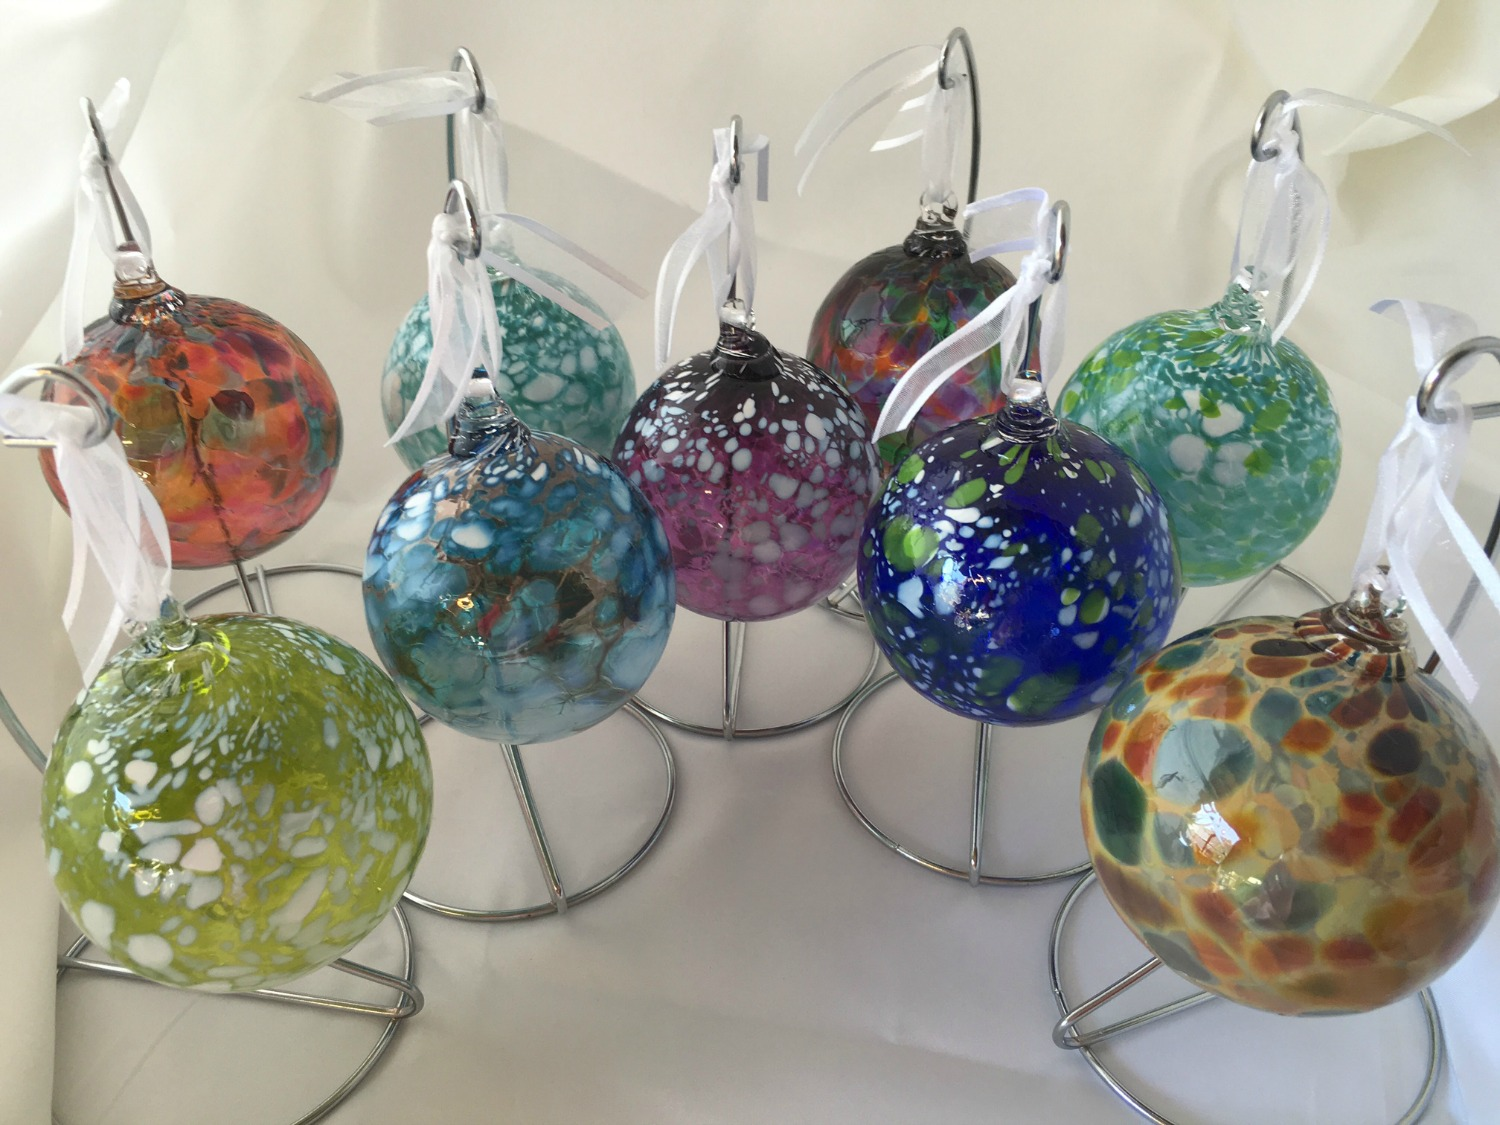 blown-glass-friendship-balls-conway-glass-myrtle-beach-conway-sc.jpg